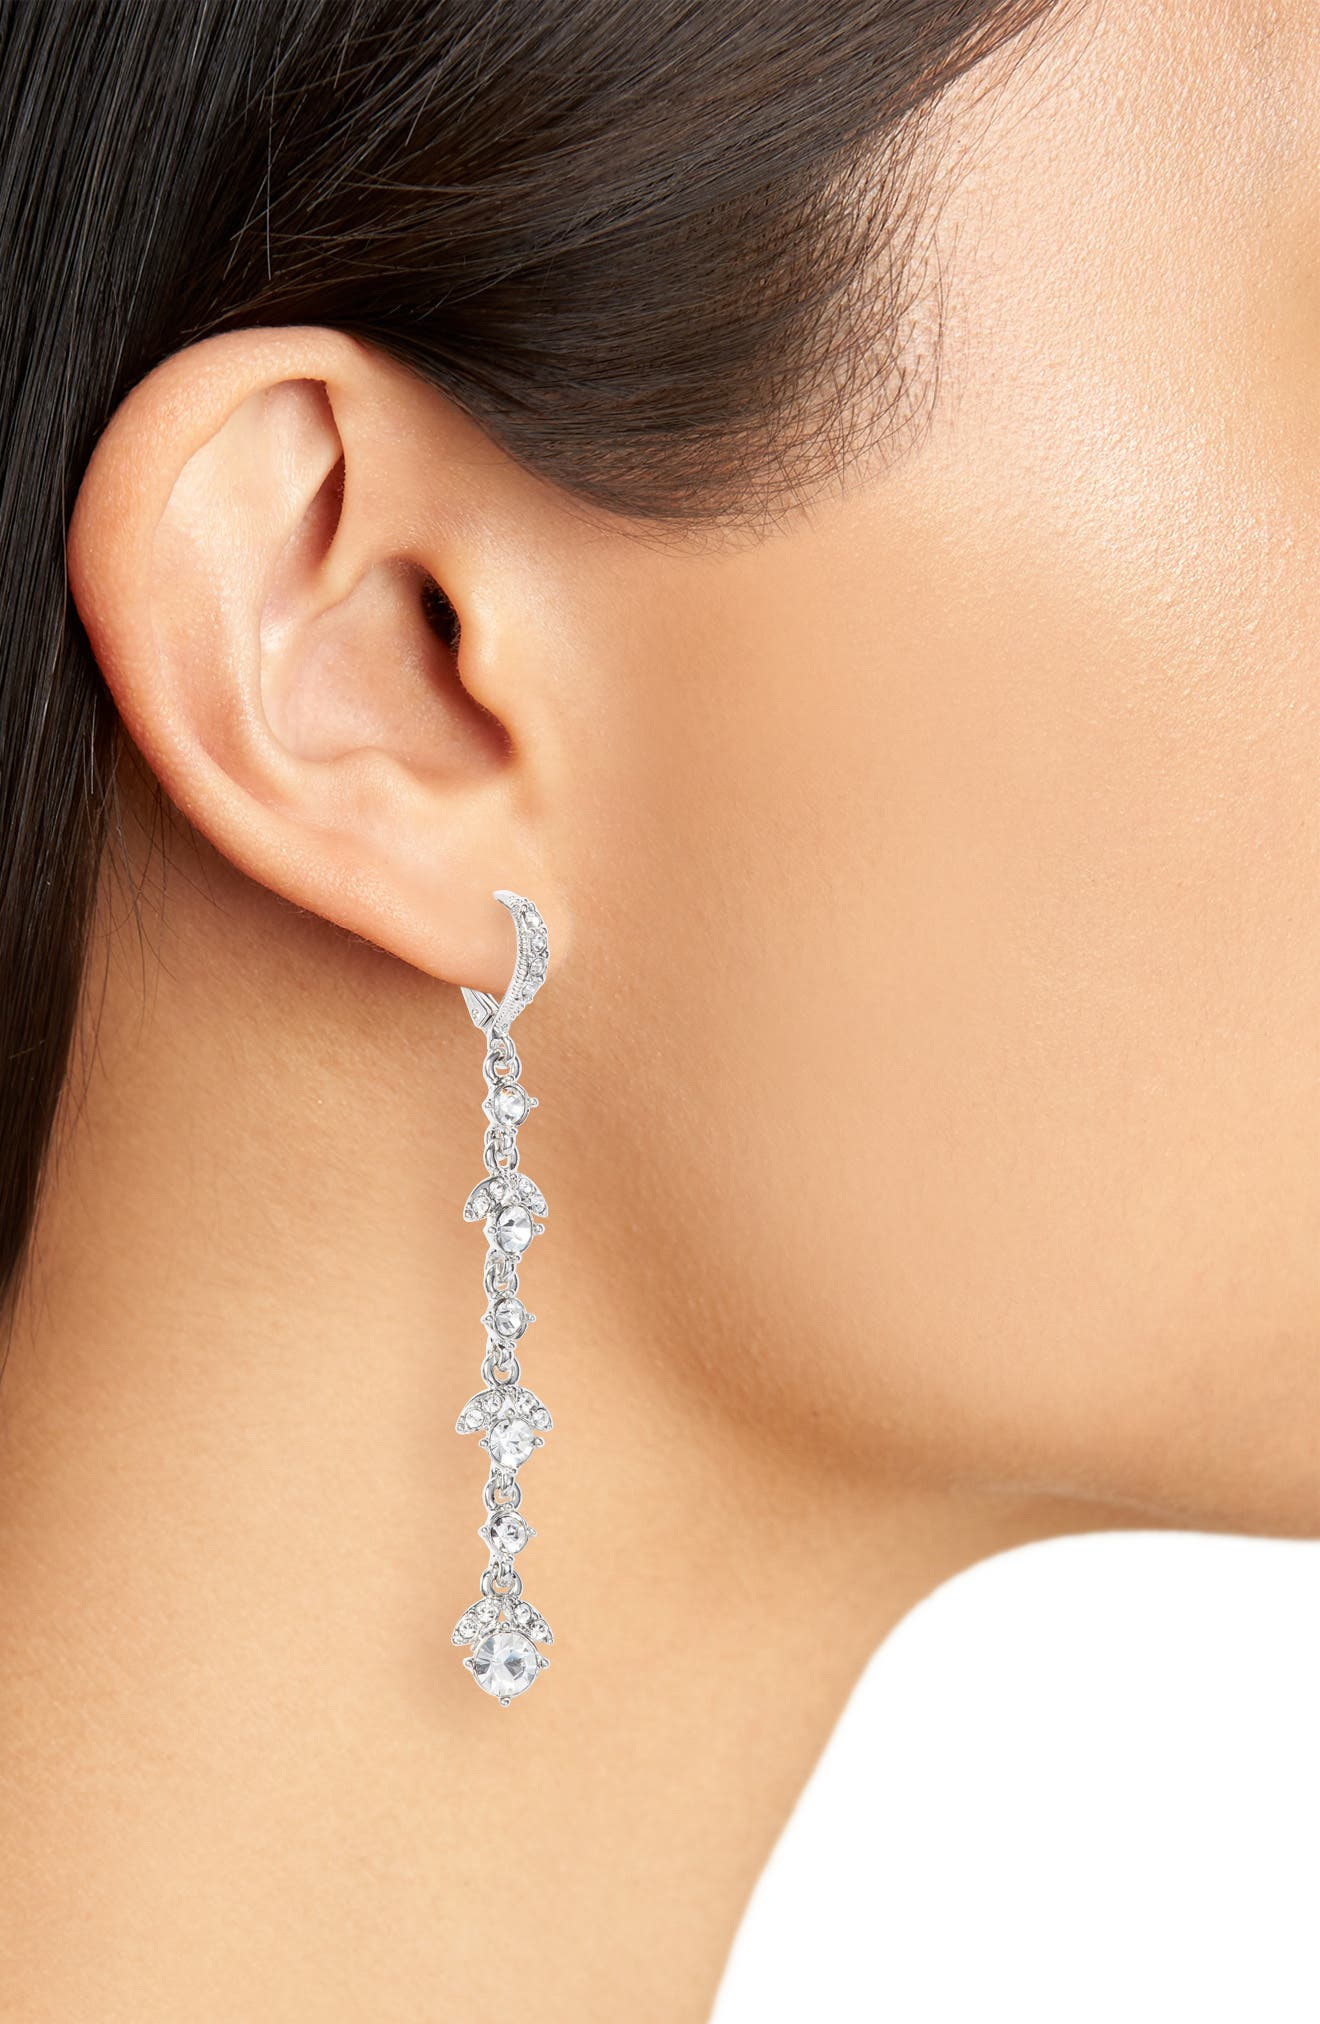 GIVENCHY,                             Crystal Linear Drop Earrings,                             Alternate thumbnail 2, color,                             SILVER/ CRYSTAL